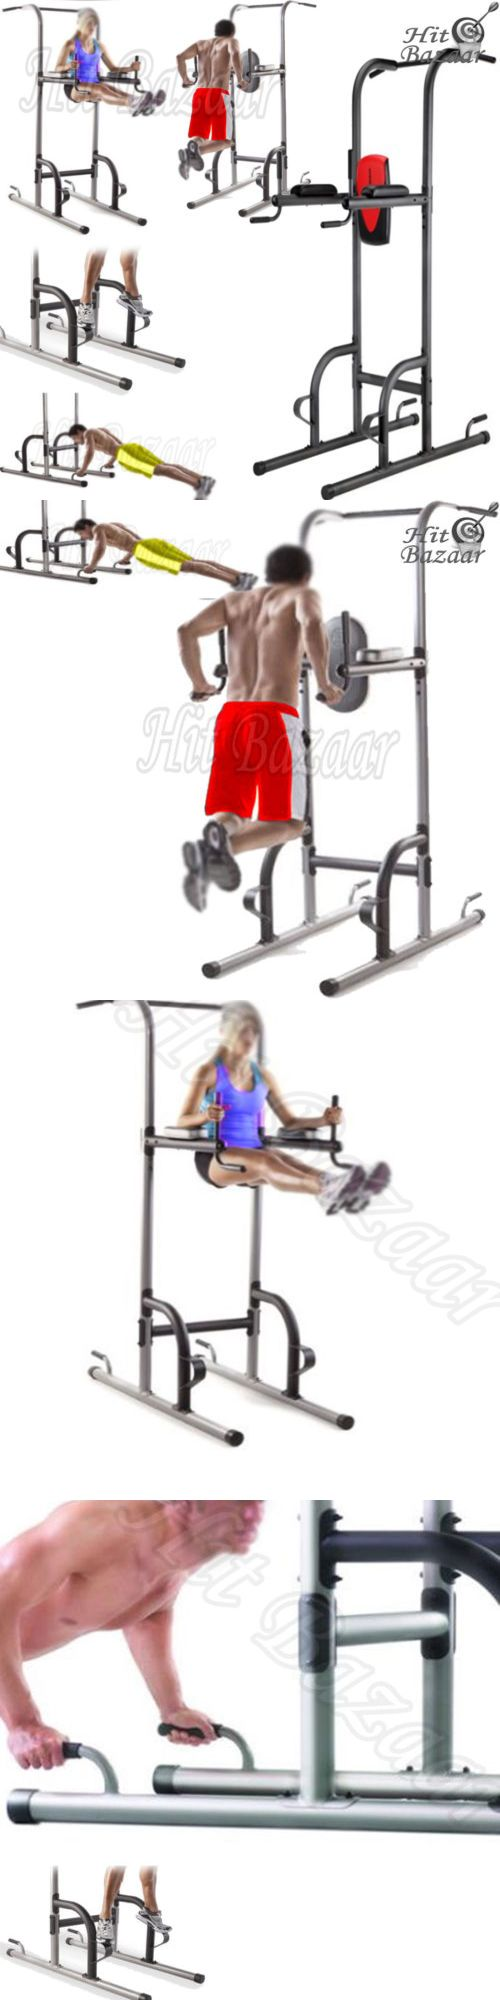 Home Gyms 158923: Power Tower Home Gym Equipment Pull Up Bar Station Dip Stand Knee Raises Workout -> BUY IT NOW ONLY: $140.69 on eBay!